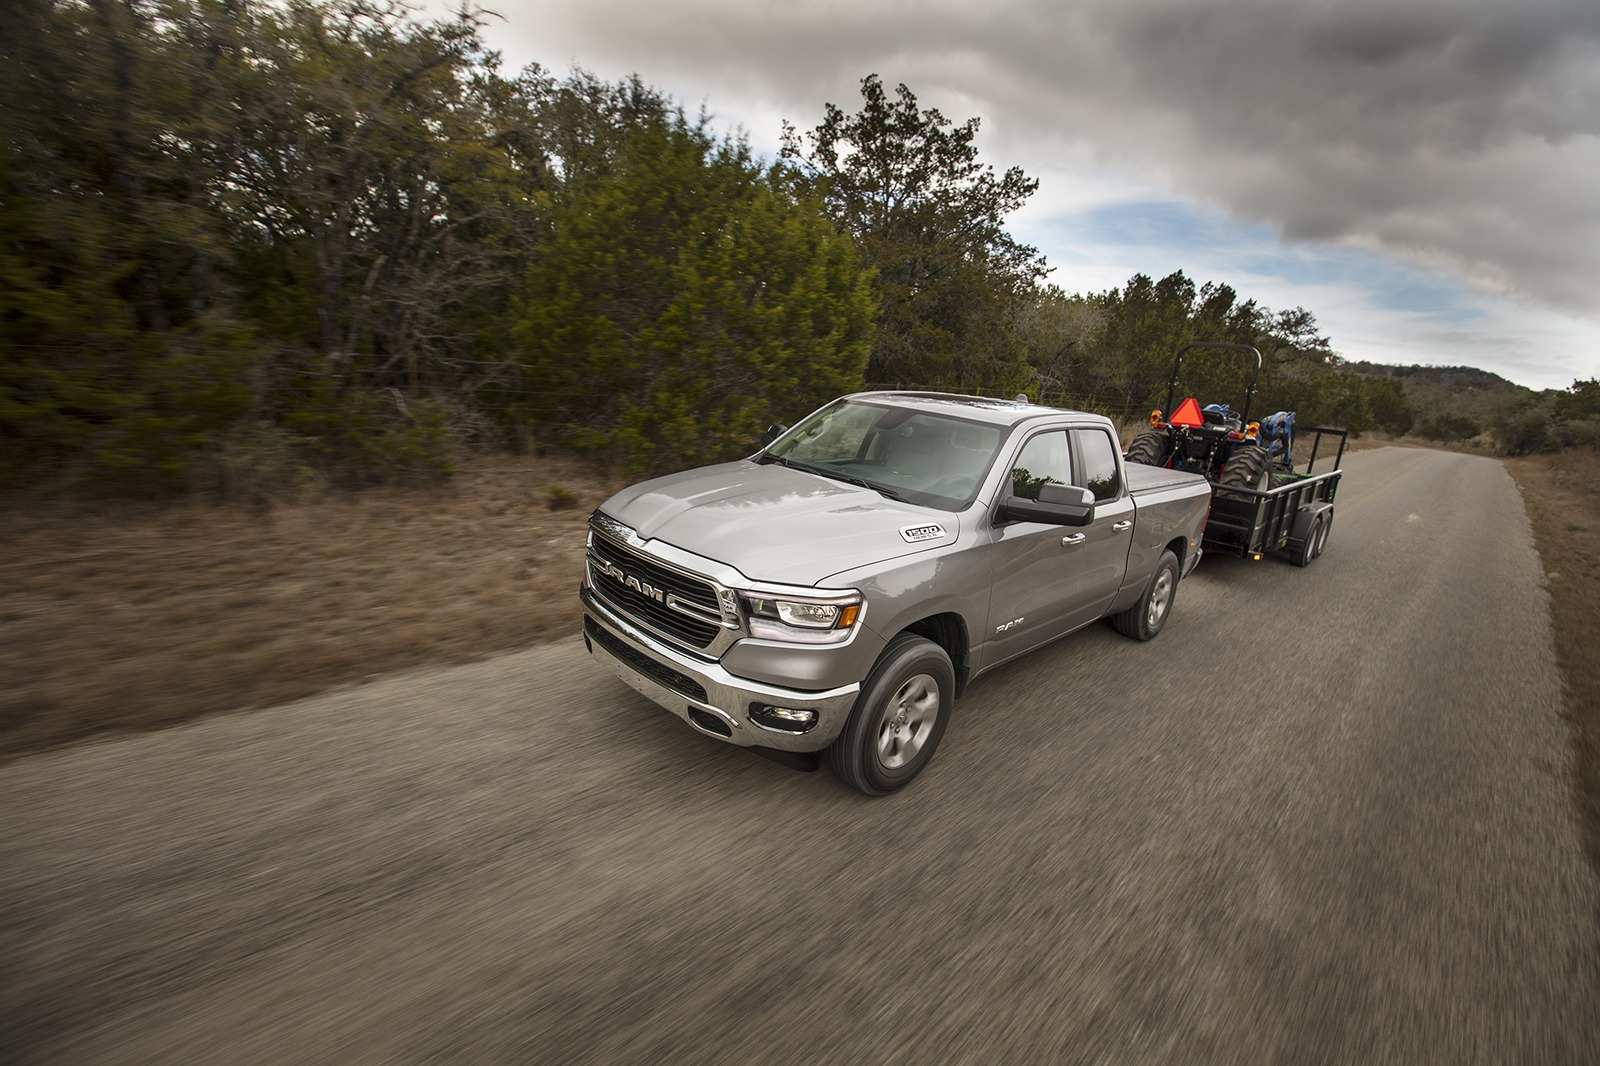 60 New 2019 Dodge 1500 Towing Capacity Prices for 2019 Dodge 1500 Towing Capacity